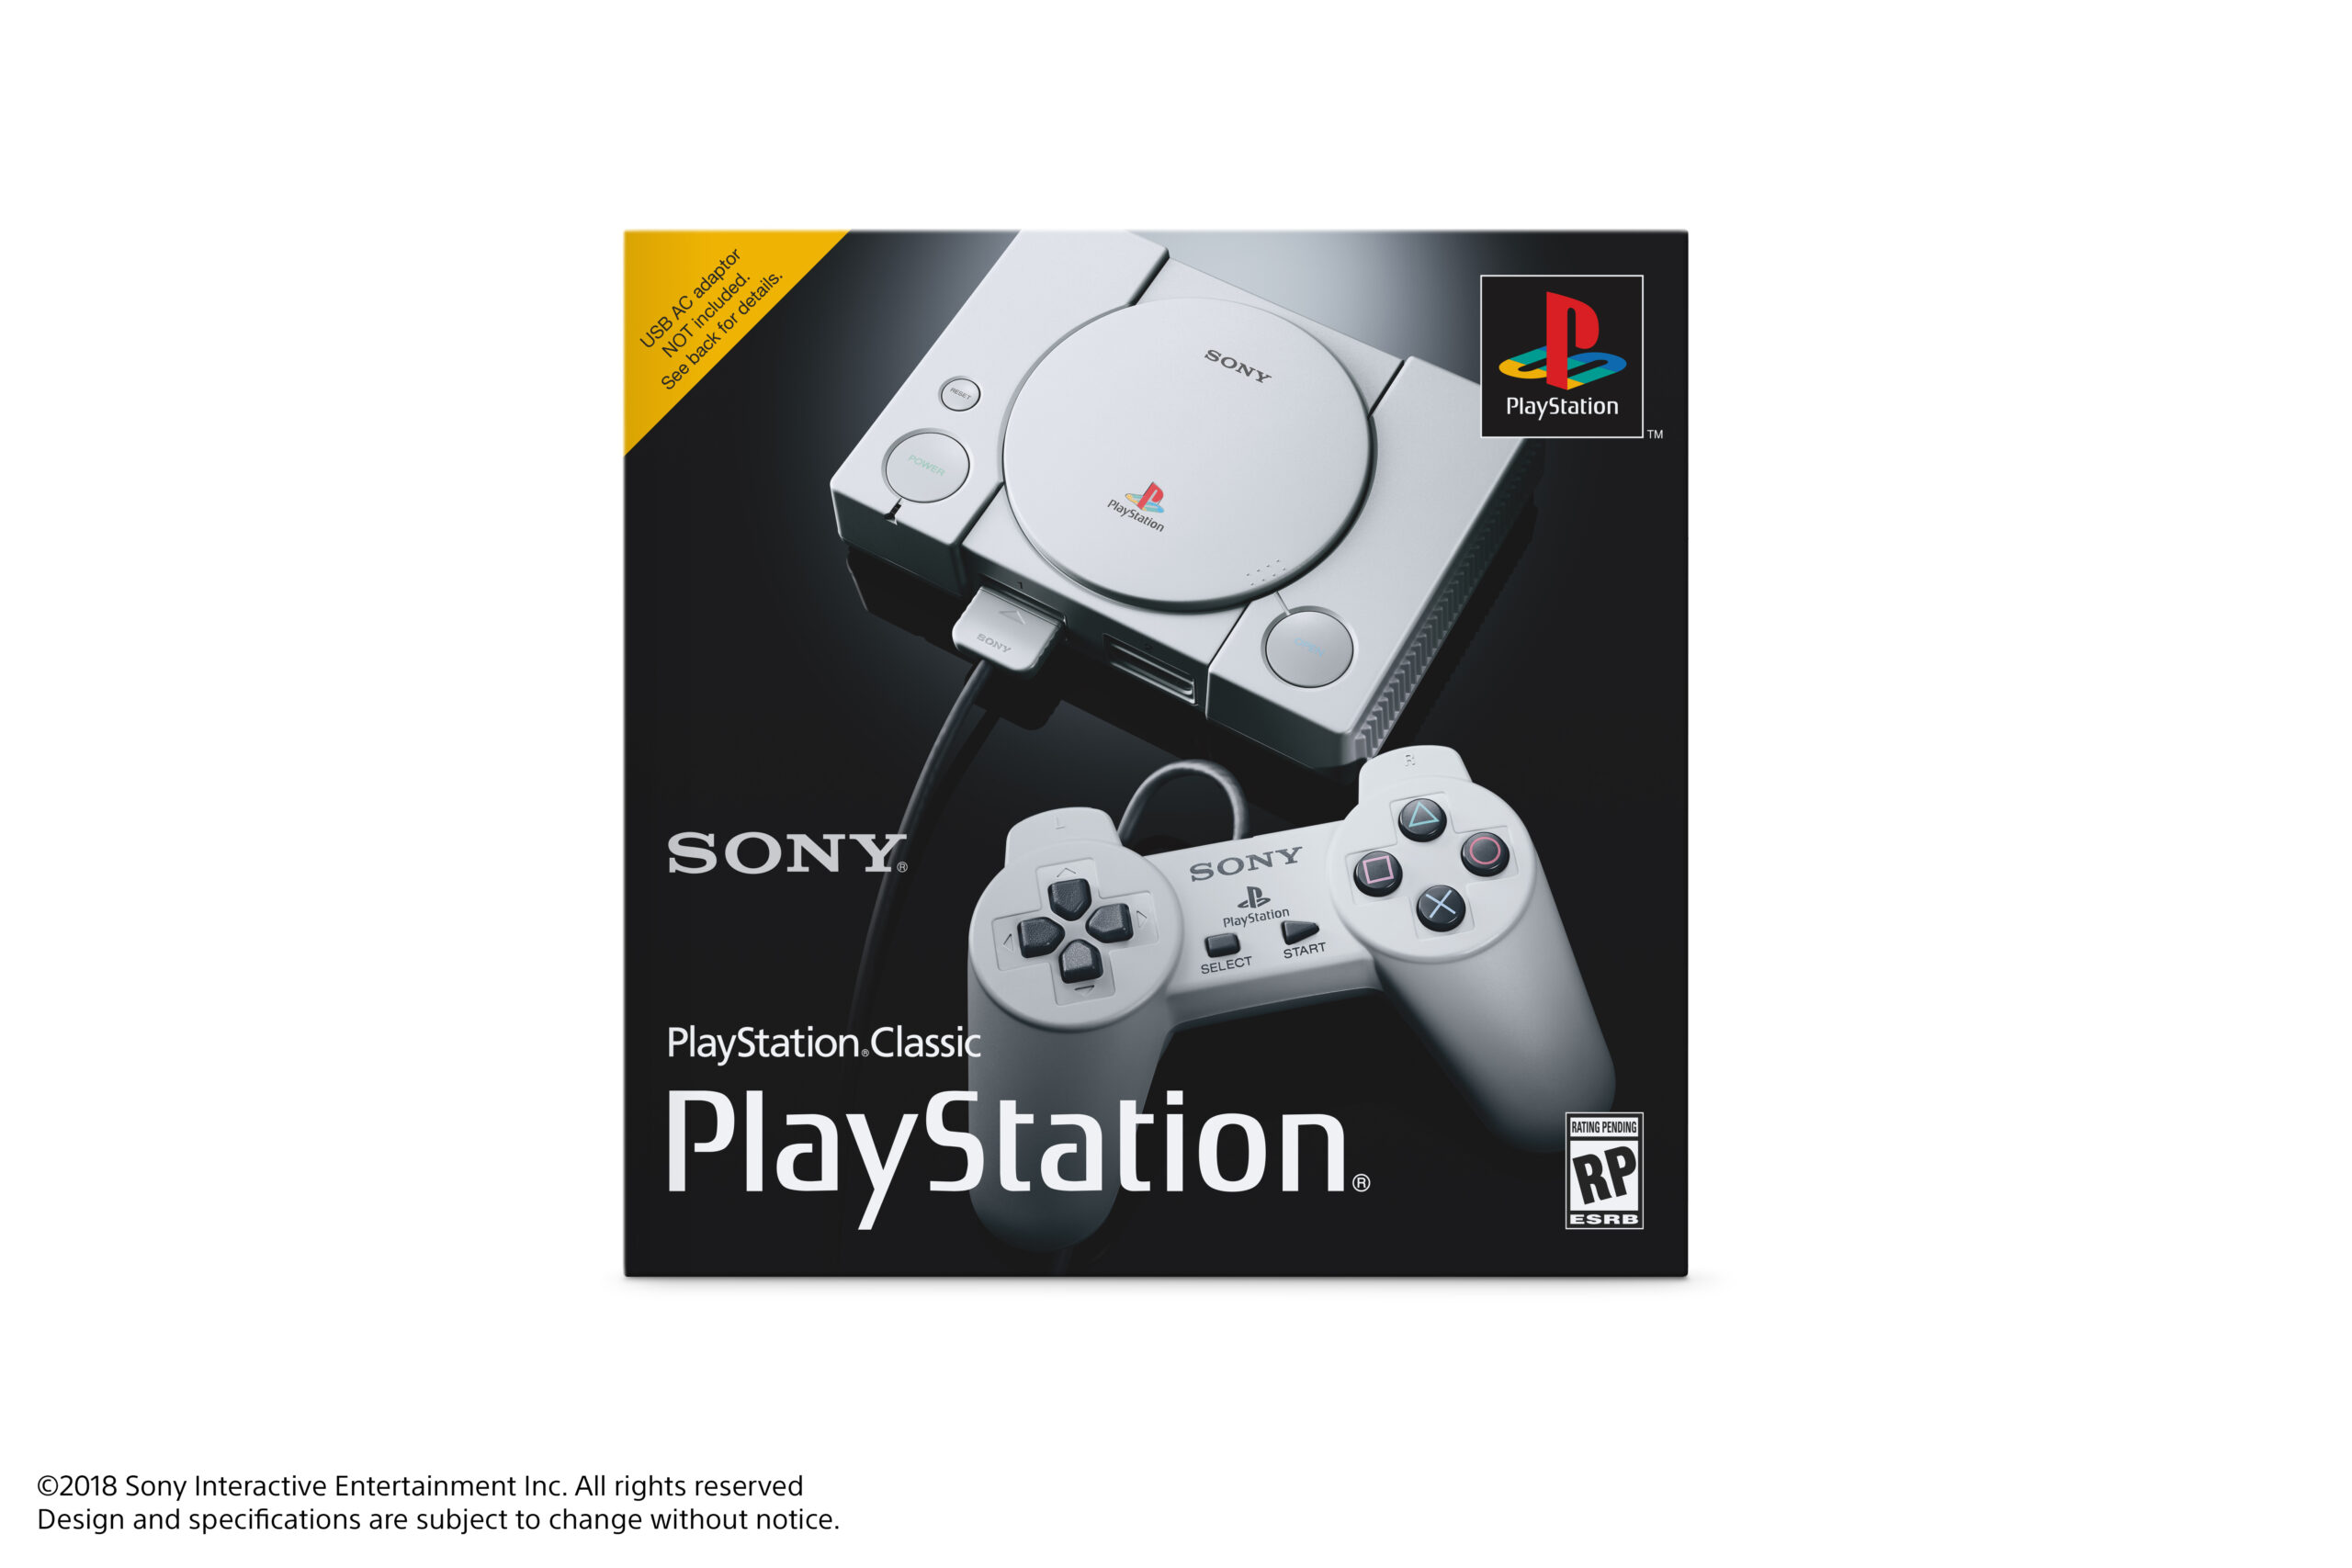 PlayStation-Classic_2018_09-19-18_004